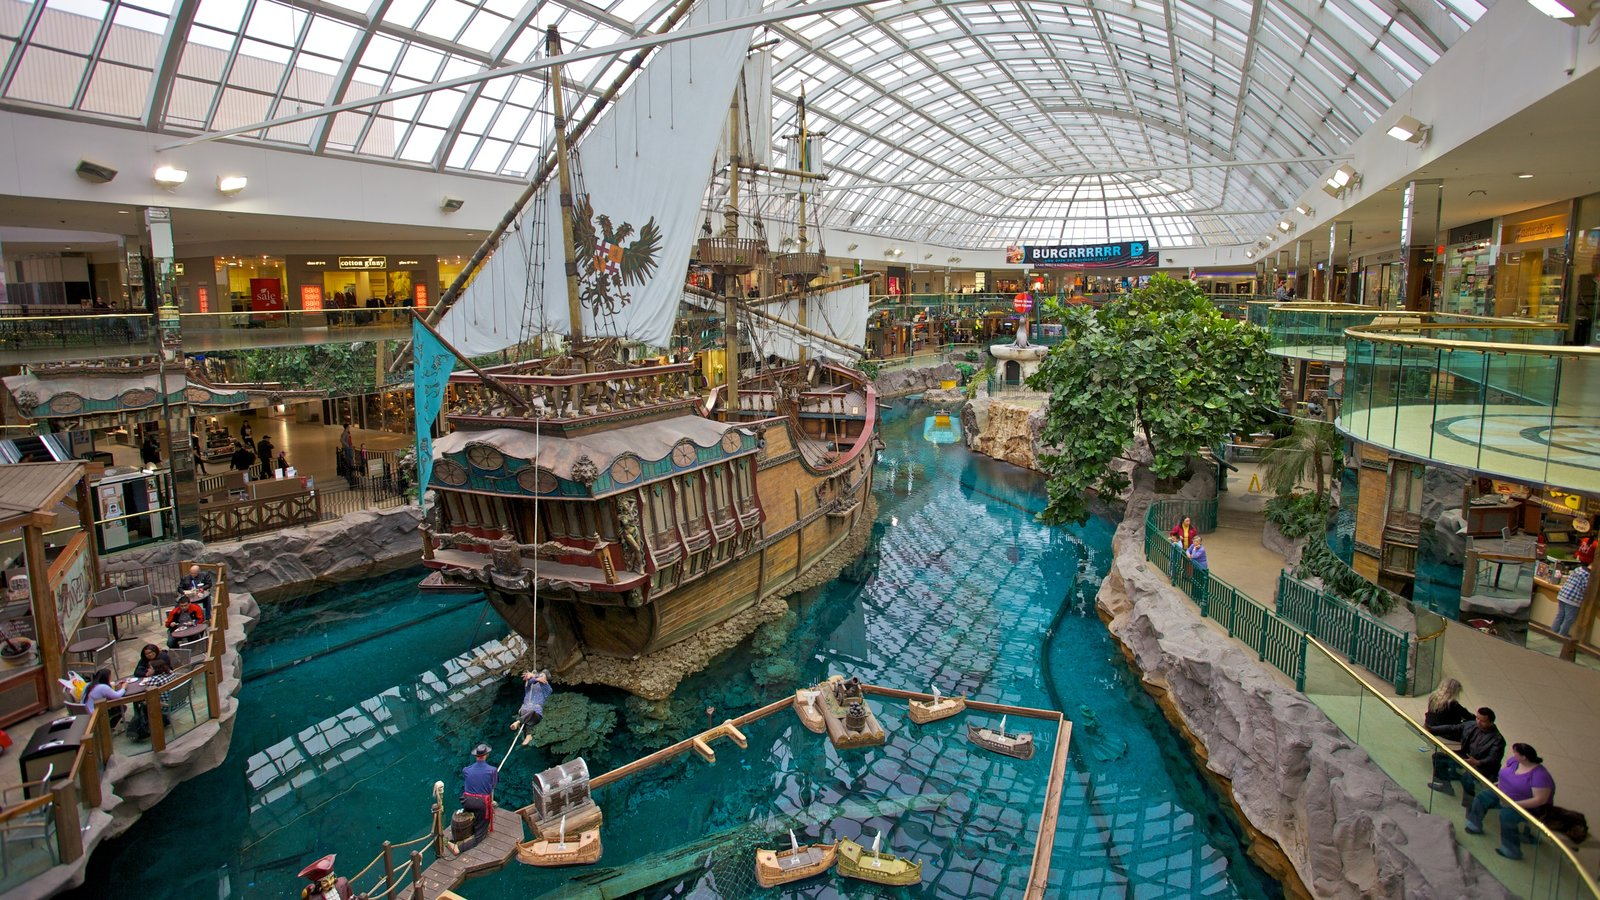 West Edmonton Mall which includes interior views, shopping and city views